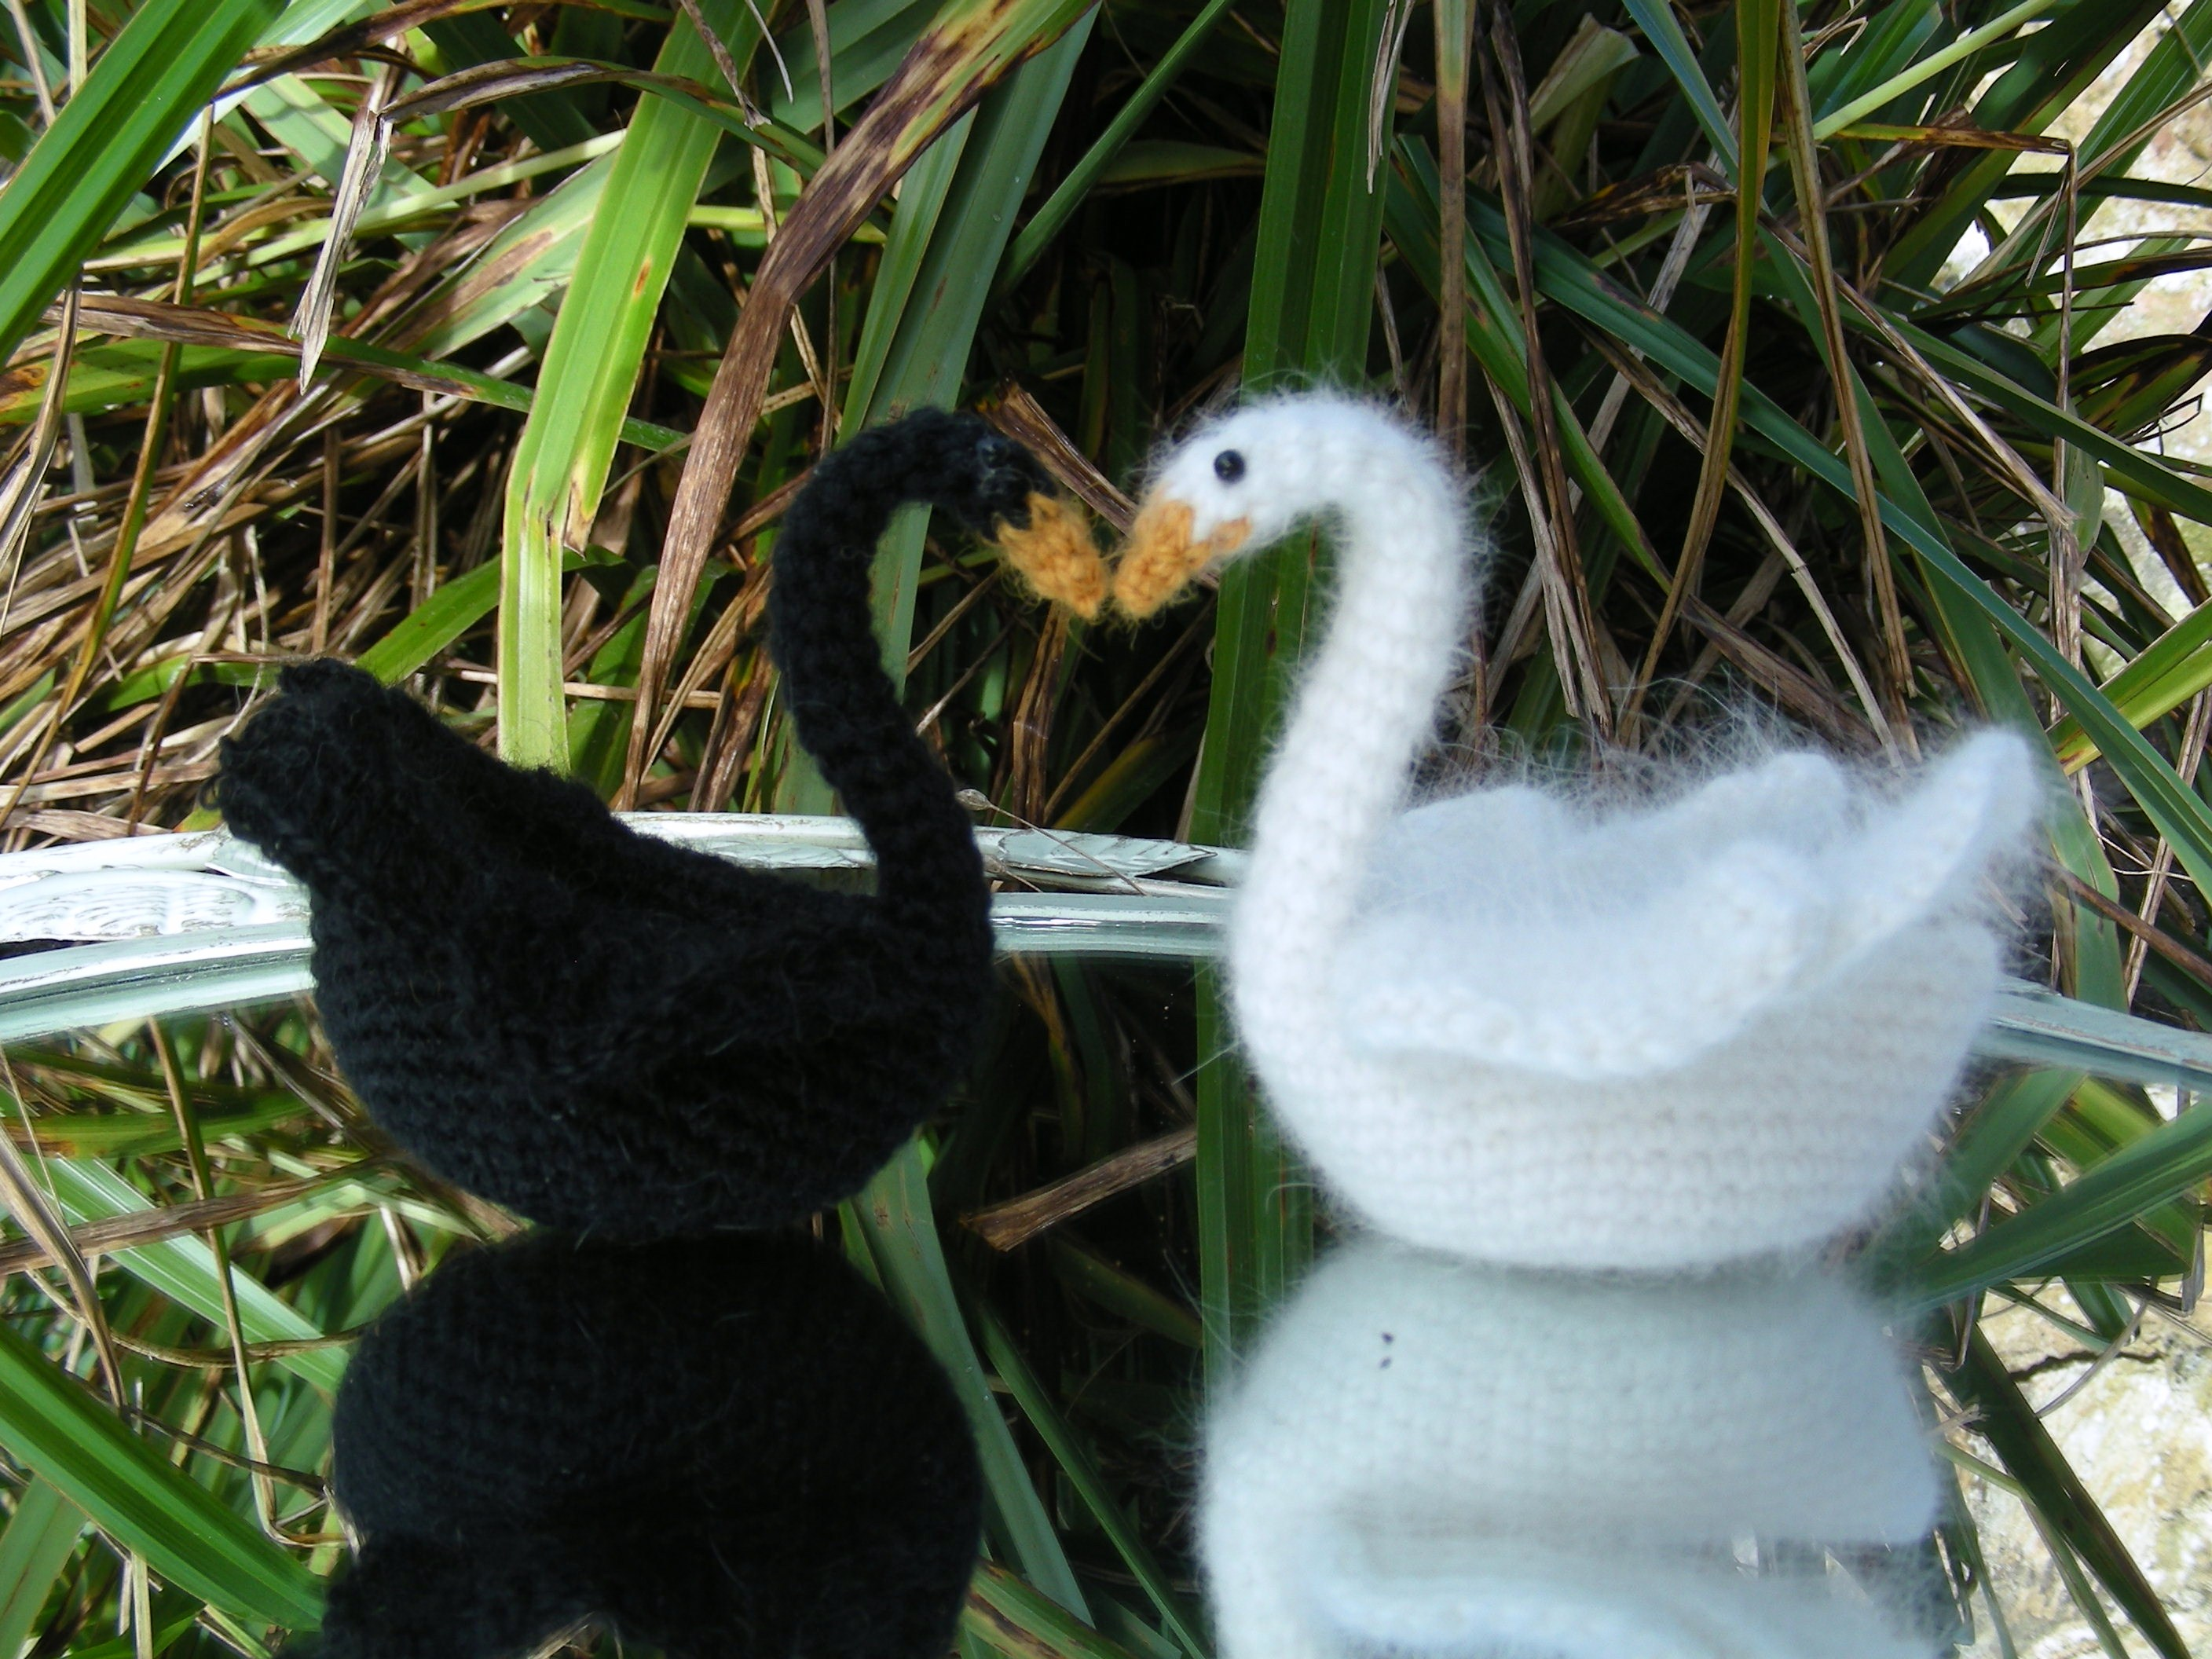 Amigurumi Duck Free Crochet Pattern : Donald duck inches pdf amigurumi crochet pattern